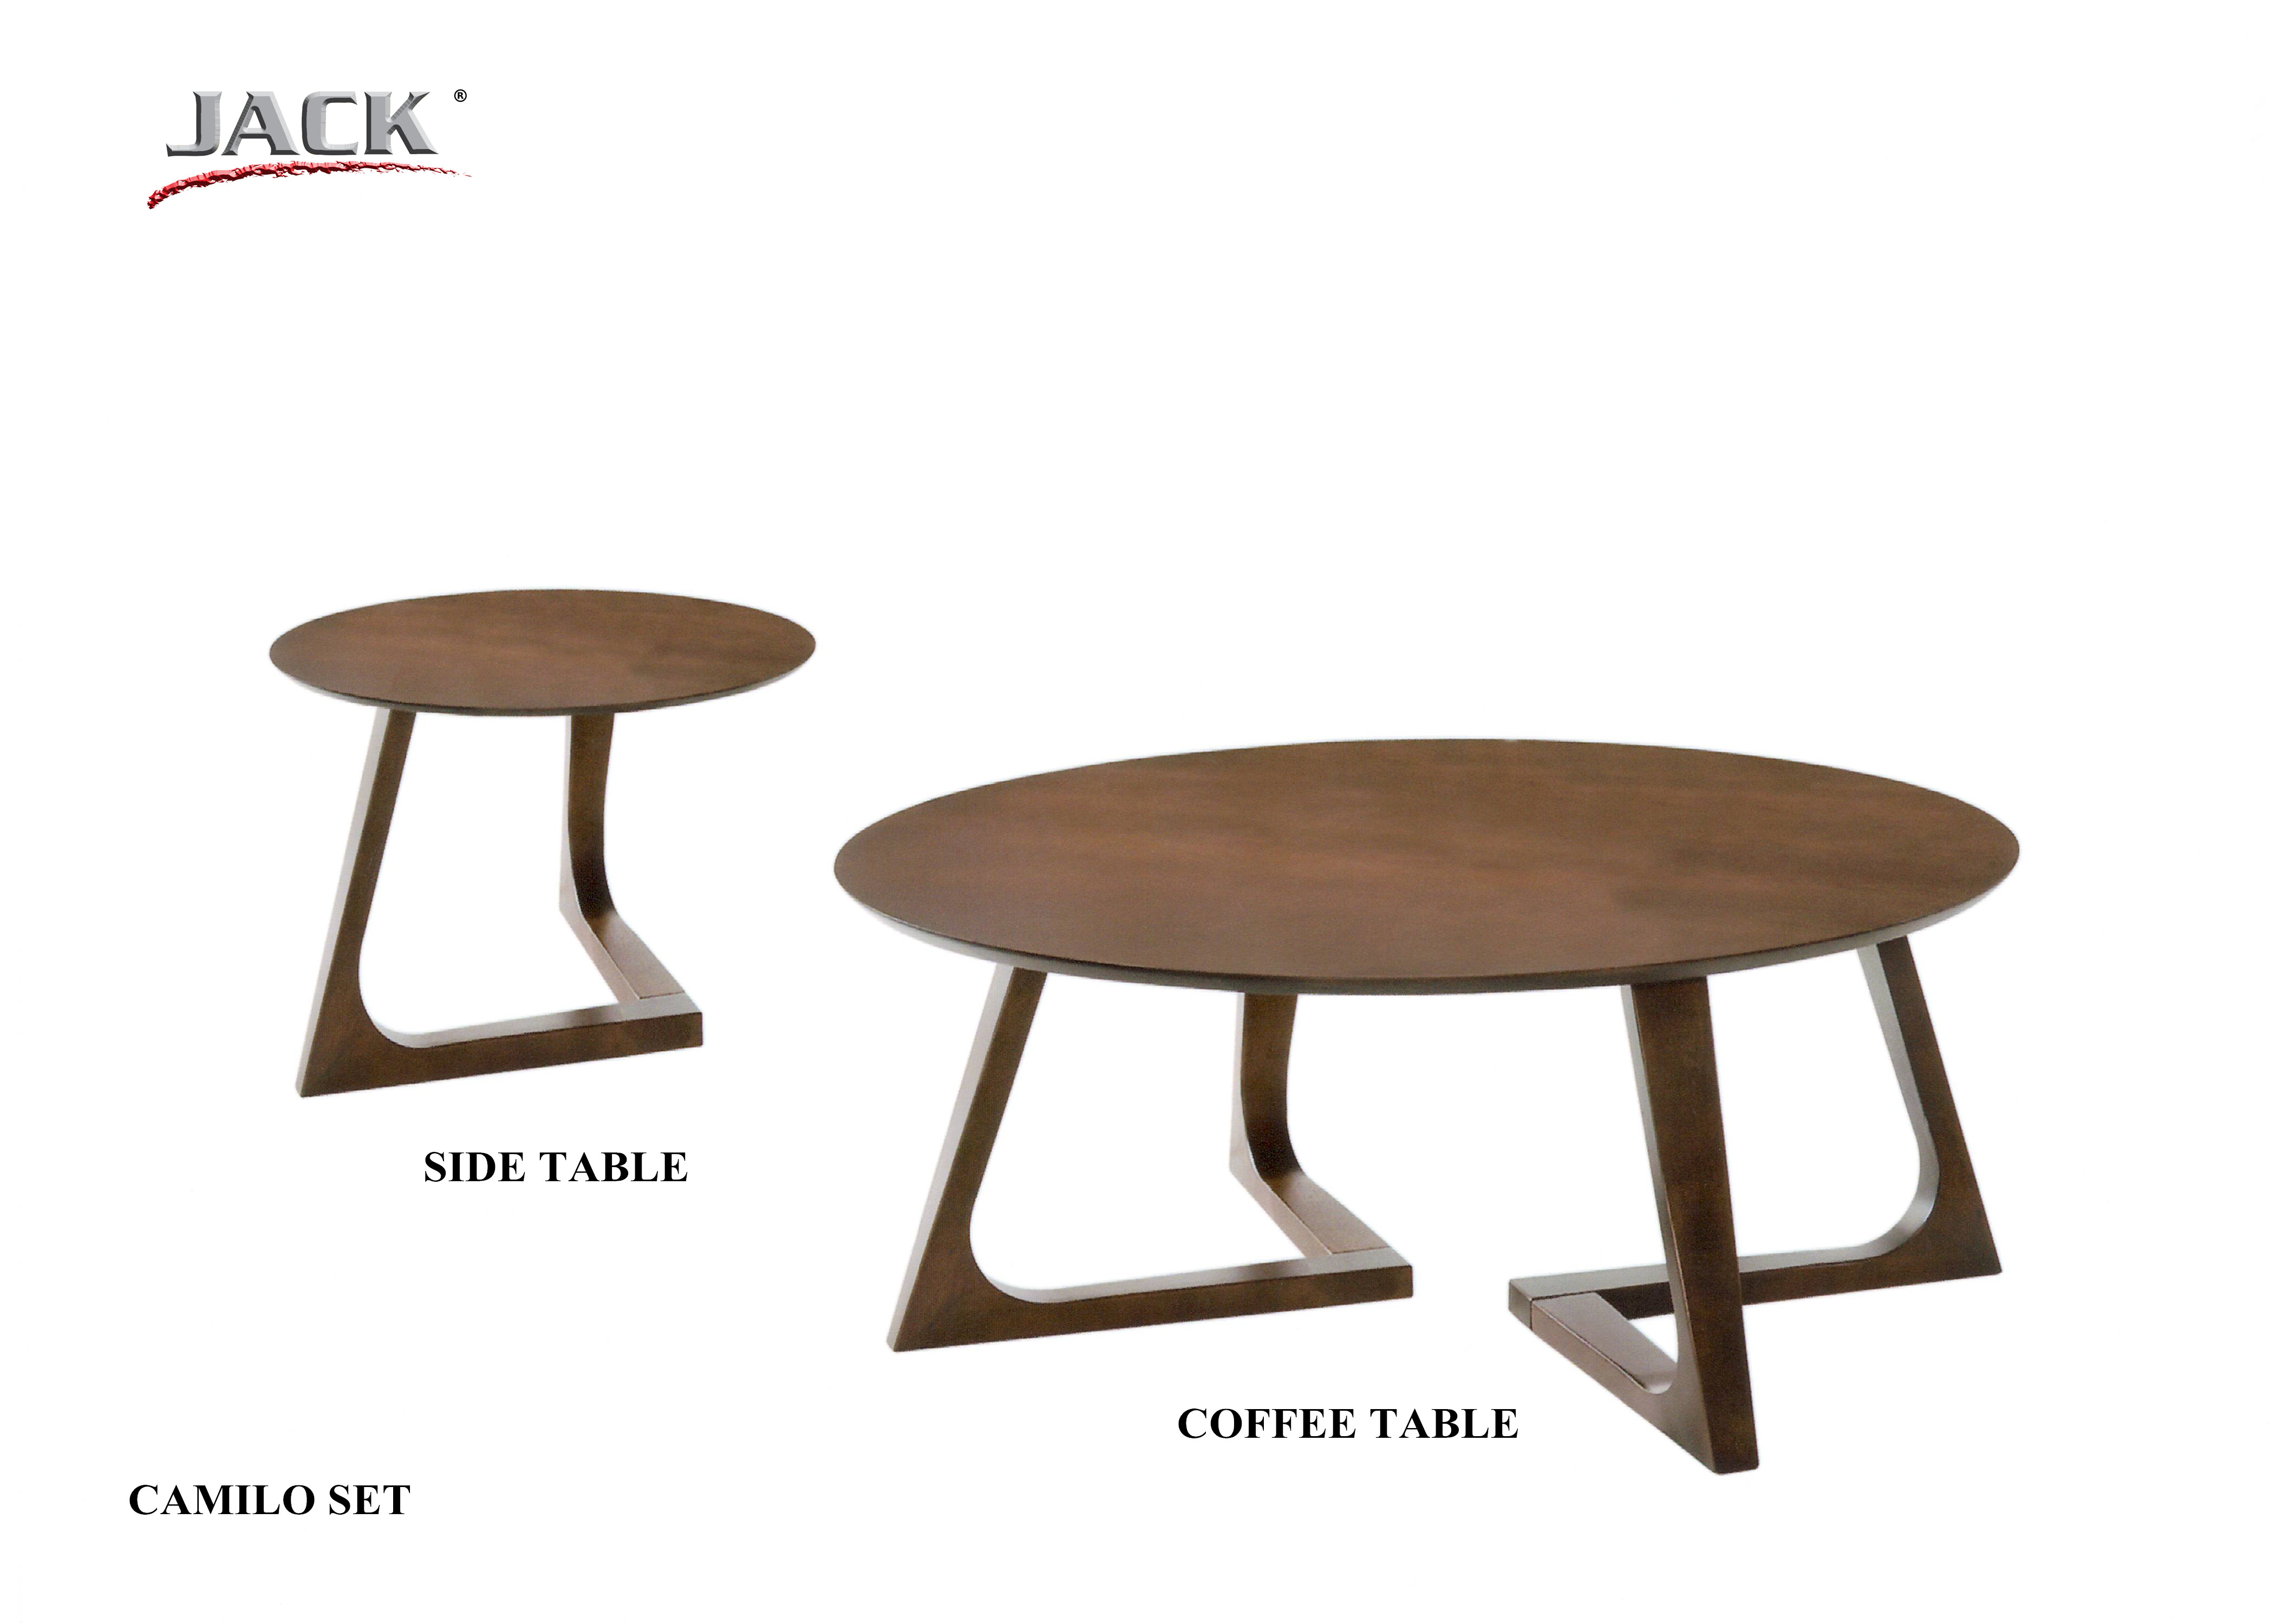 CAMILO COFFEE TABLE & SIDE TABLE